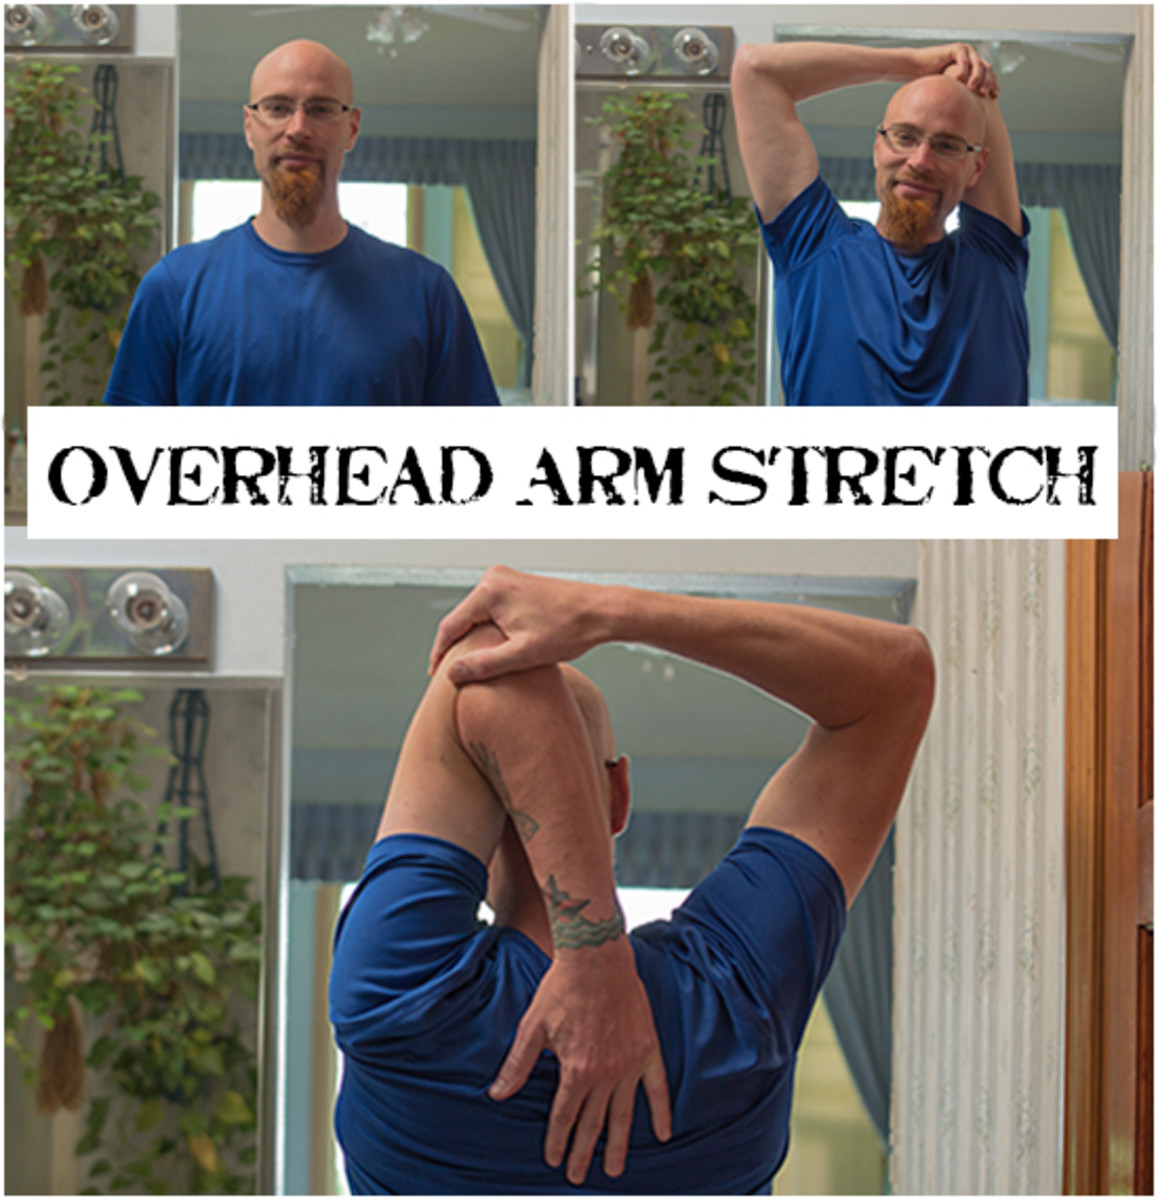 For the overhead arm stretch, reach both arms up and grab one elbow with your other hand. Pull the elbow over and downward.